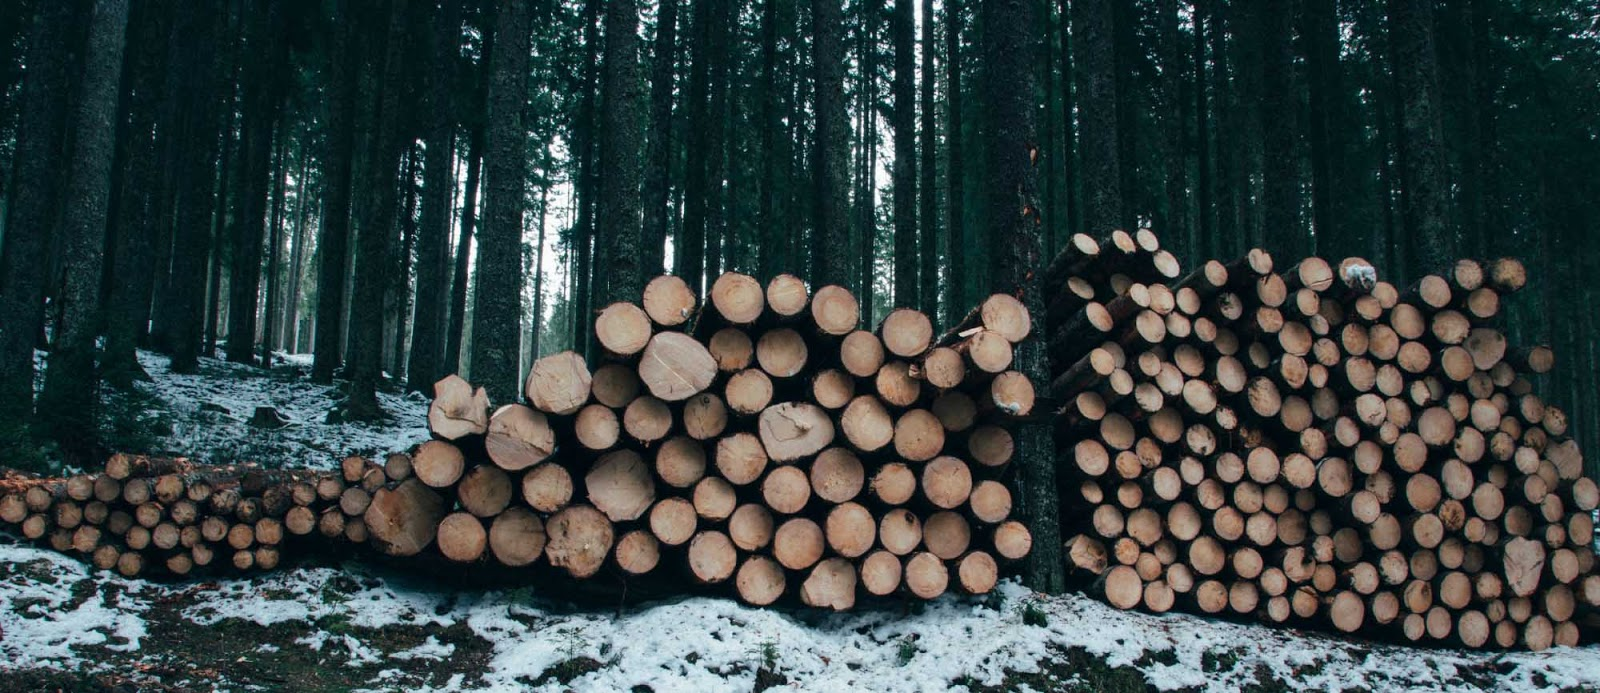 Hardwood Logs For Sale: How To Buy Firewood Logs For Long-Lasting Fires